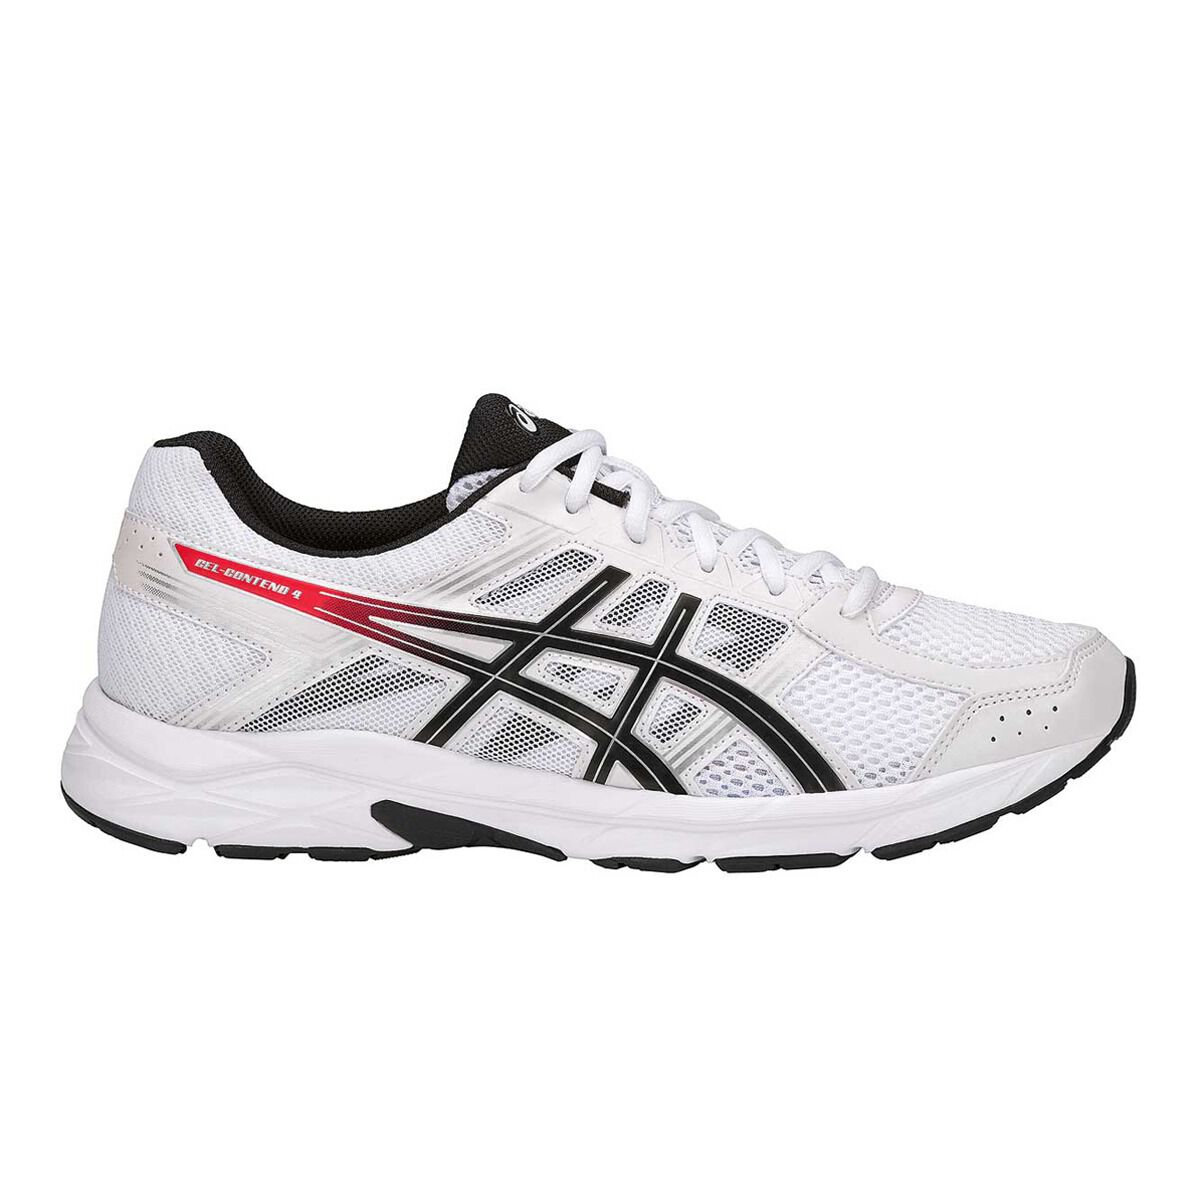 contend Gymna Gel De Asics 4Chaussures E2DHeYW9I